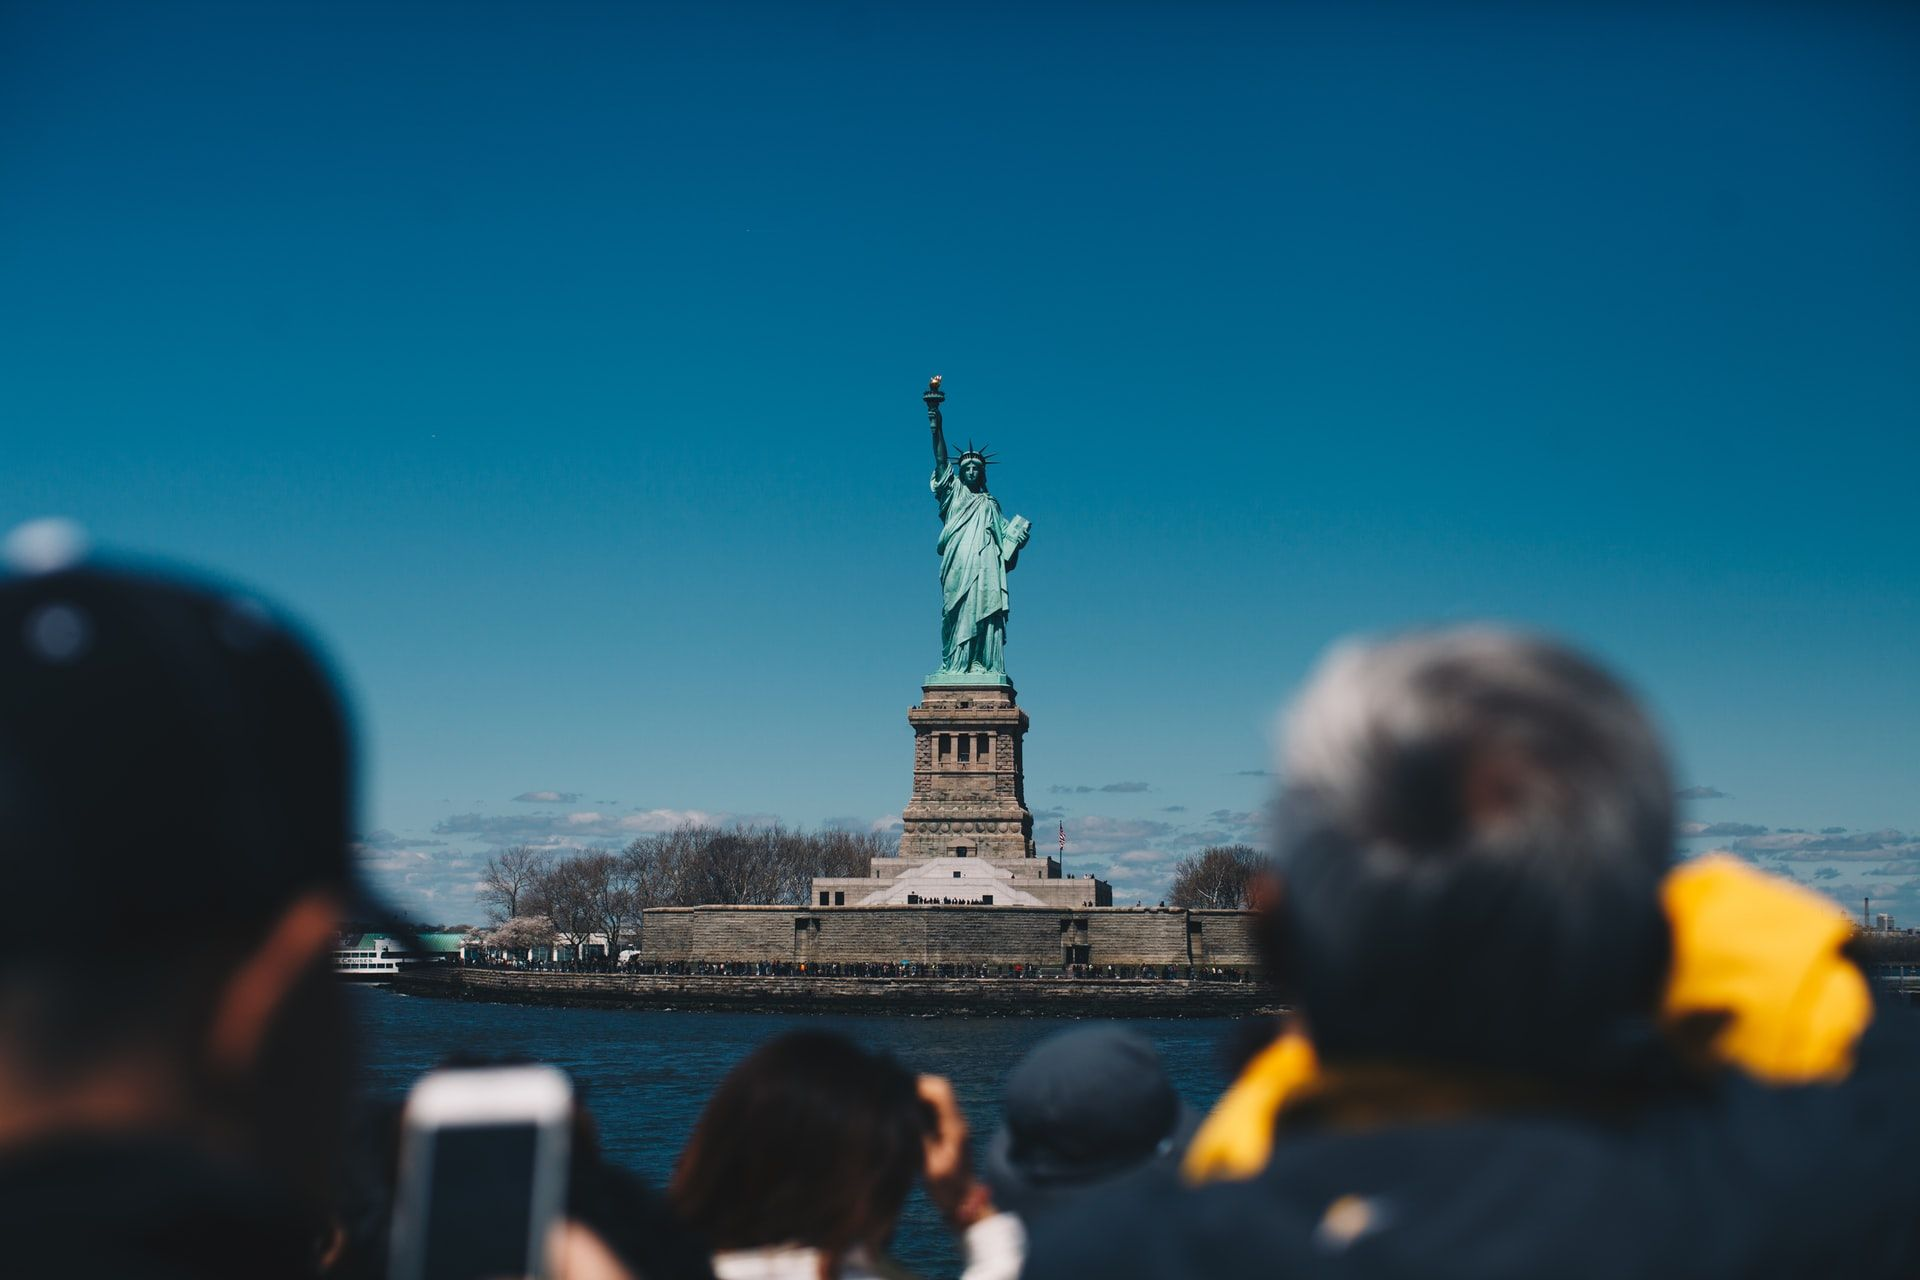 back-of-tourists-heads-taking-photos-on-staten-island-ferry-of-the-statue-of-liberty